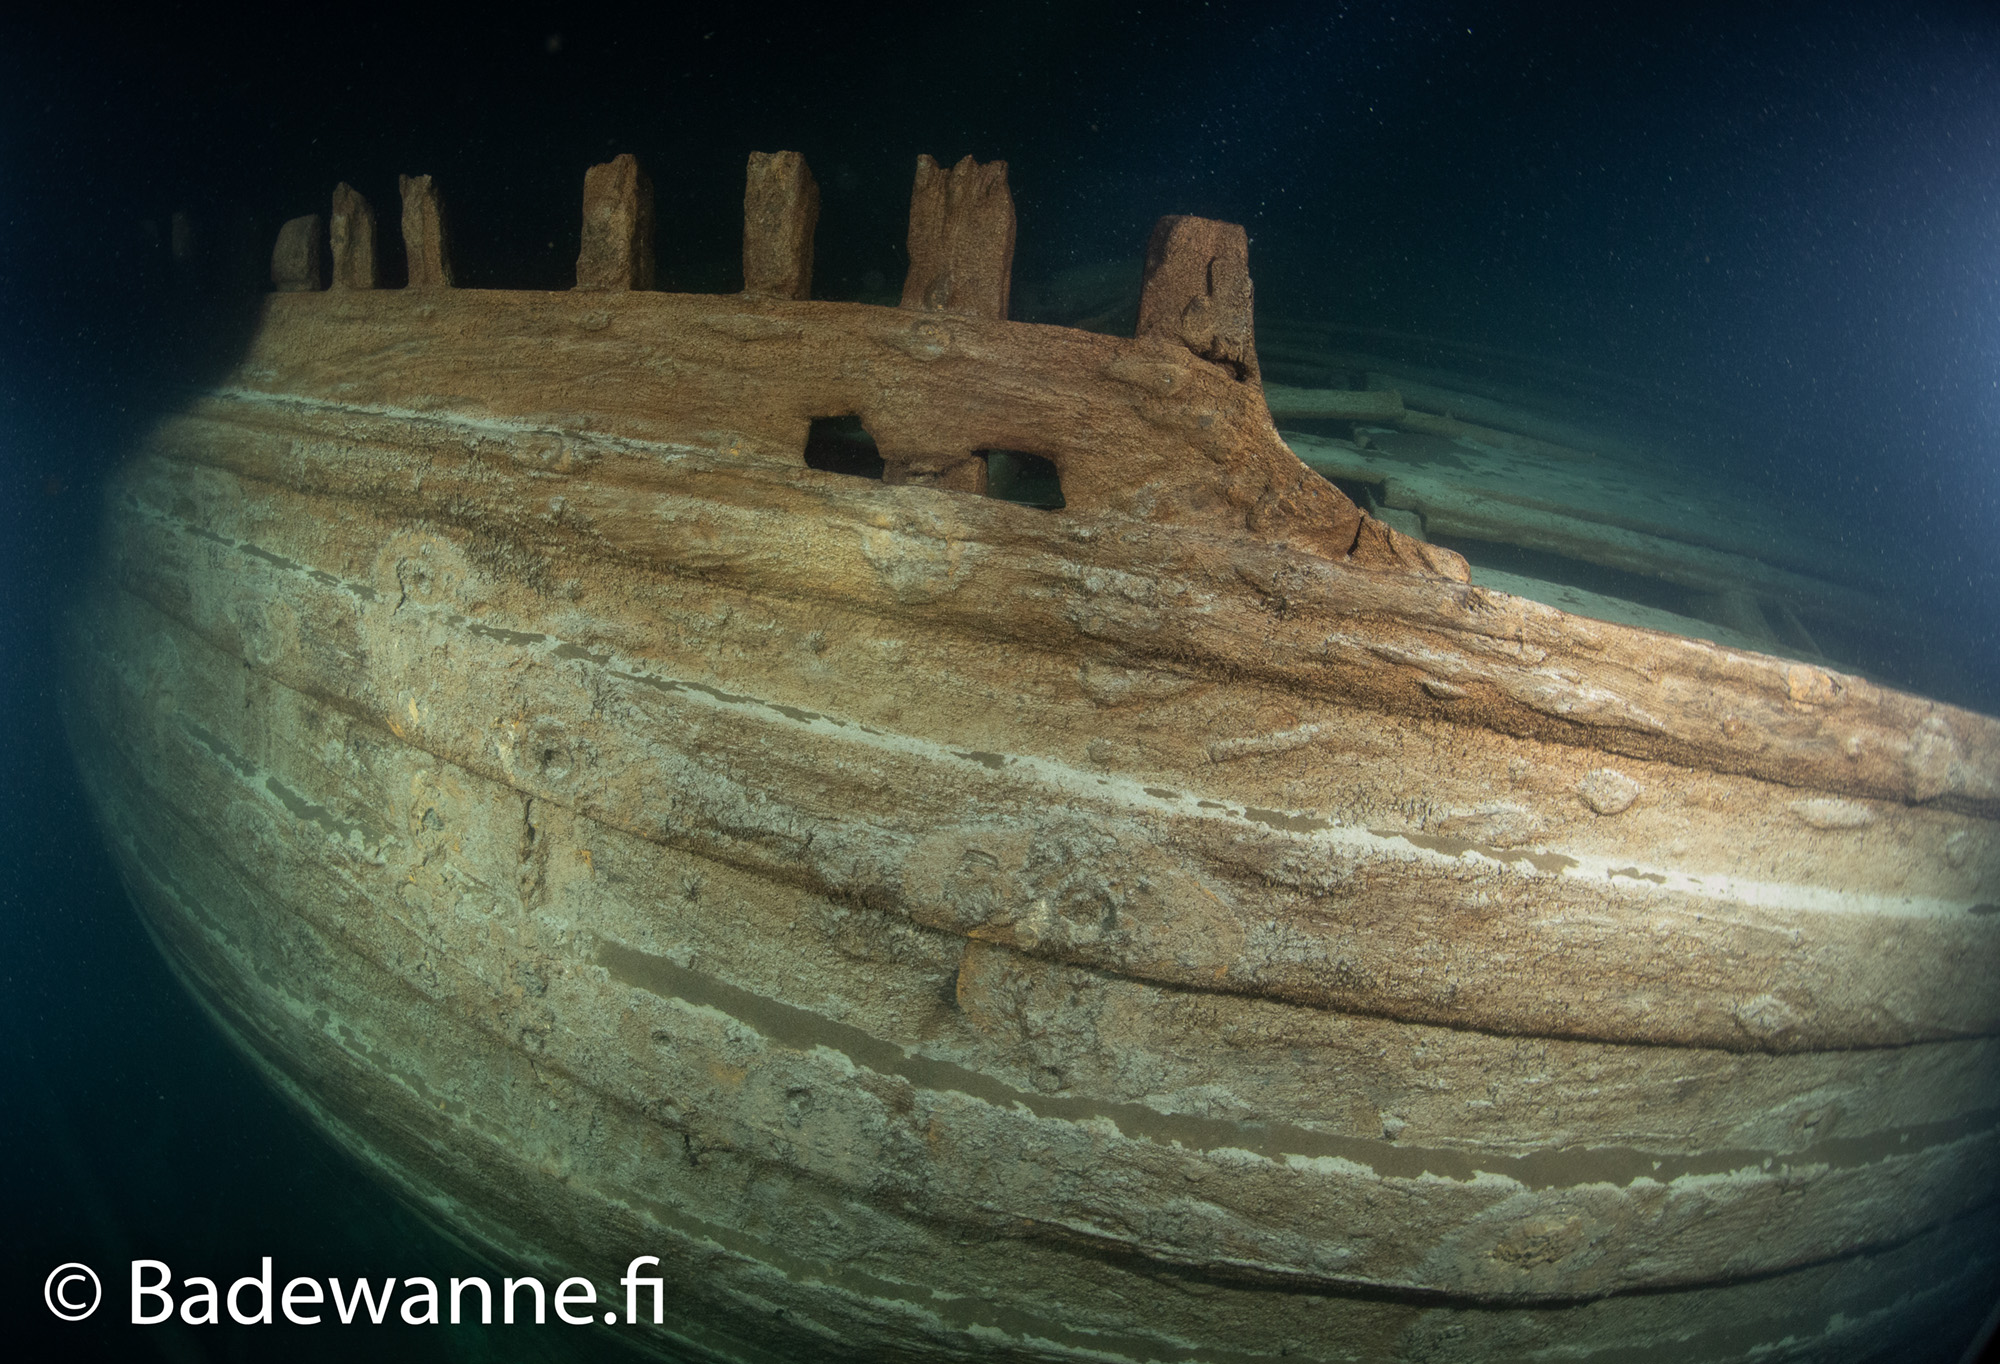 Well-Preserved Wreck of 17th Century Ship Discovered